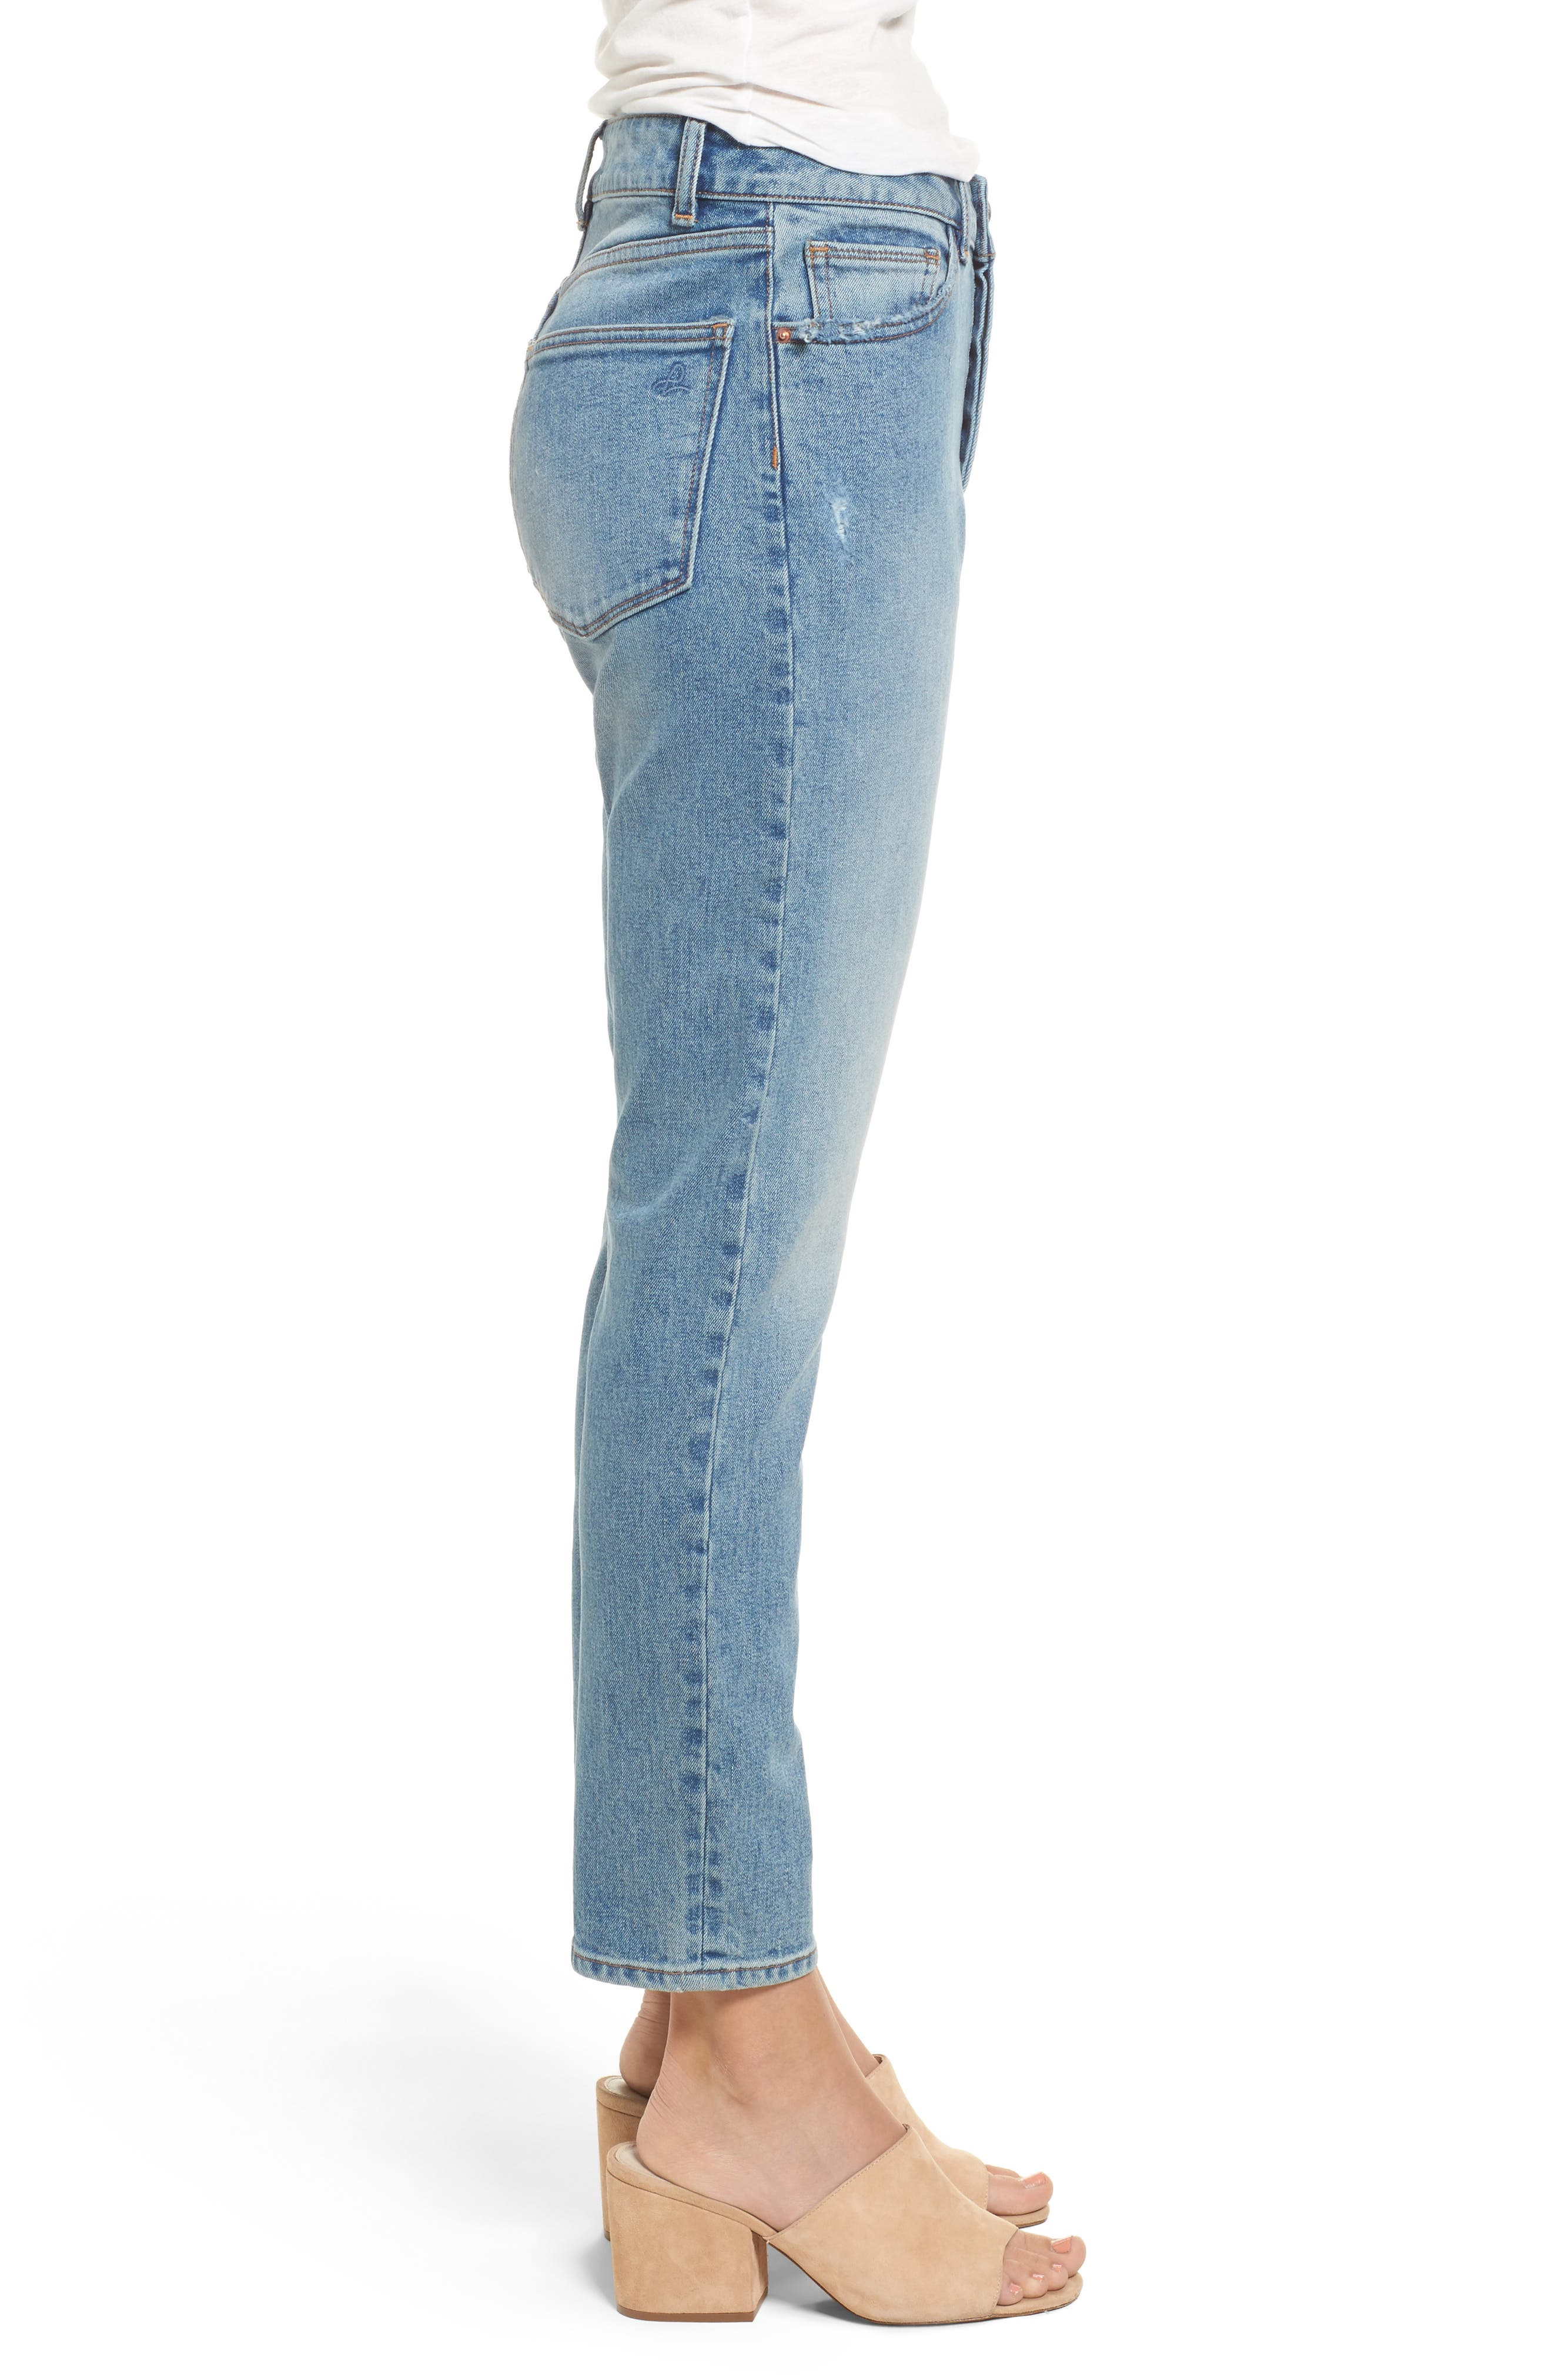 Bella High Waist Ankle Skinny Jeans,                             Alternate thumbnail 3, color,                             430